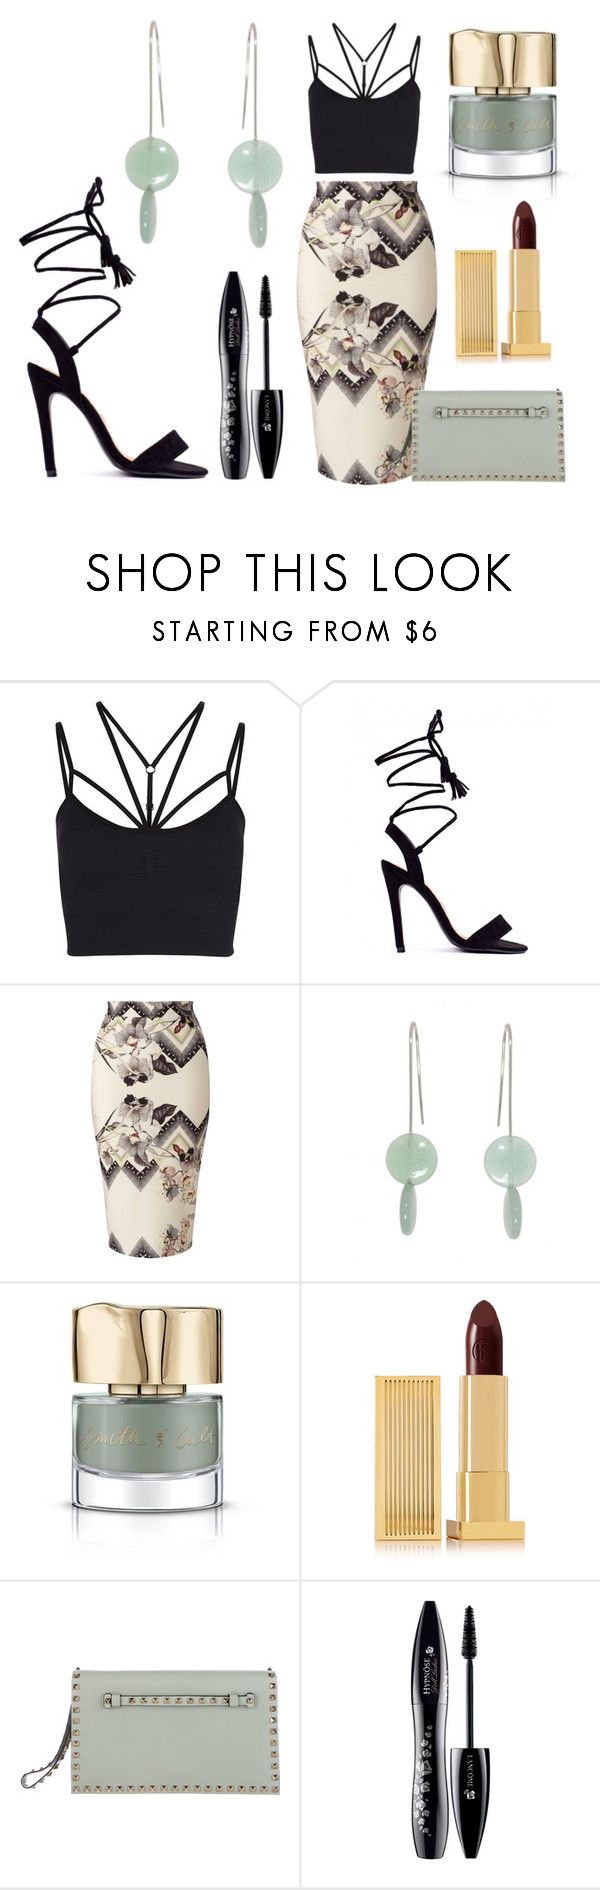 """""""Juxtaposition"""" by avagoldworks ❤ liked on Polyvore featuring Sweaty Betty, Miss Selfridge, Smith & Cult, Lipstick Queen, Valentino, Lancôme and avagoldworks"""